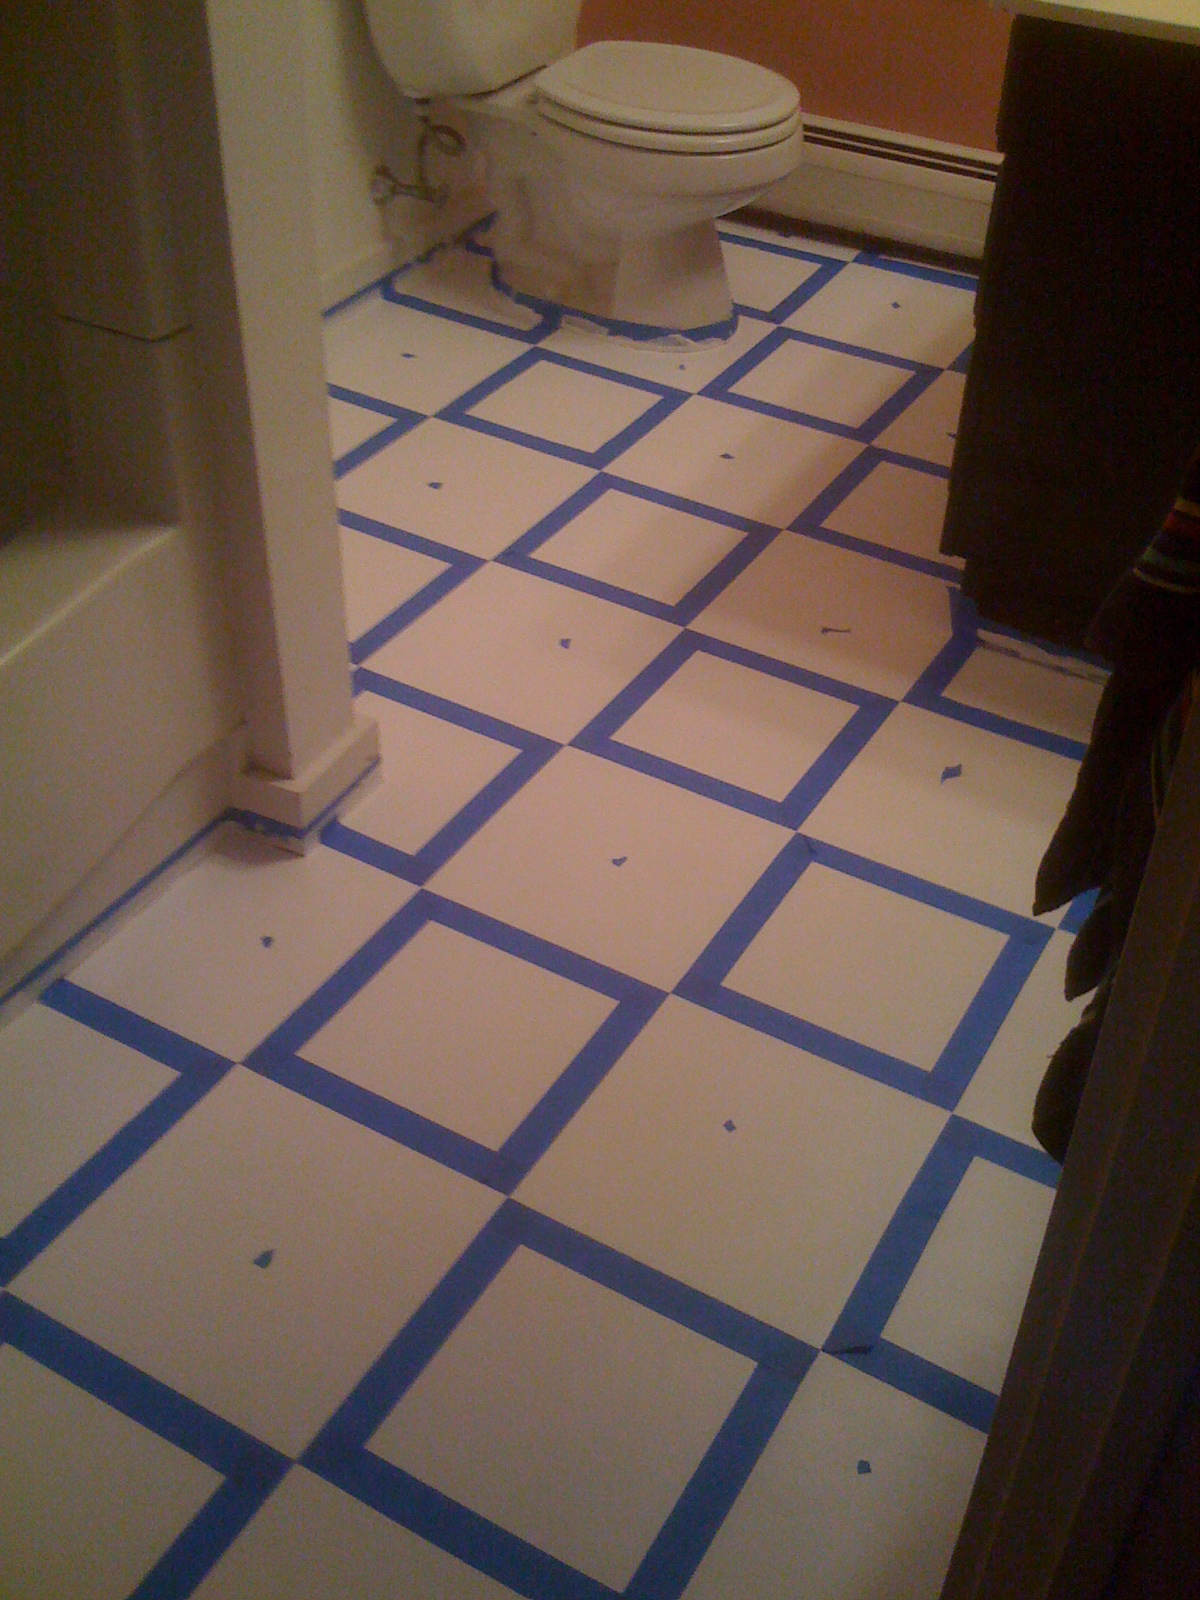 Diy painting old vinyl floor tiles mary wiseman designs step 7 painting dailygadgetfo Images